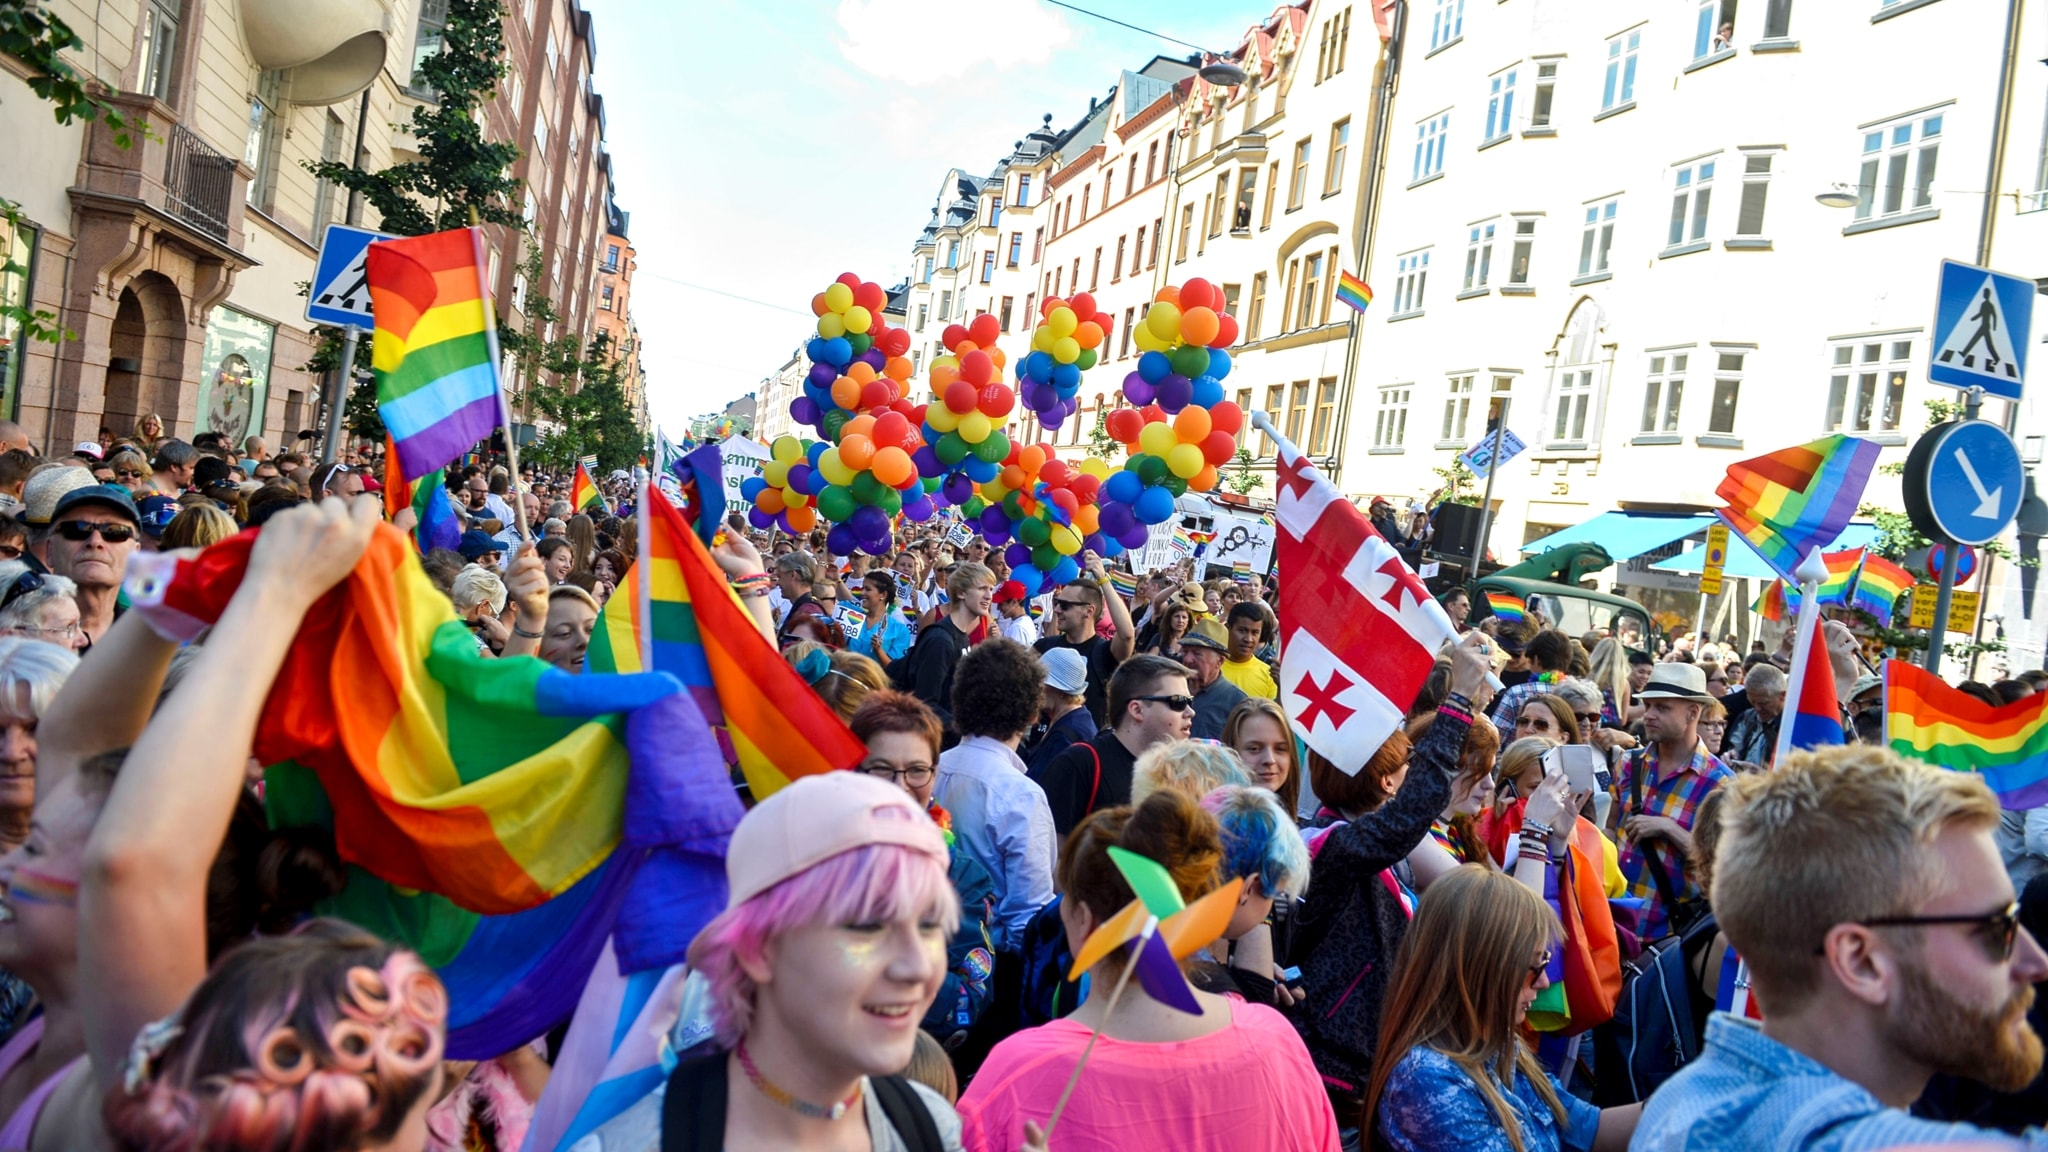 Stockholm Pride for LGBTQ newcomers, Festival-goers and protesters: Eritrean diaspora divided, and Newcomer Diaries with Naga Jyothi